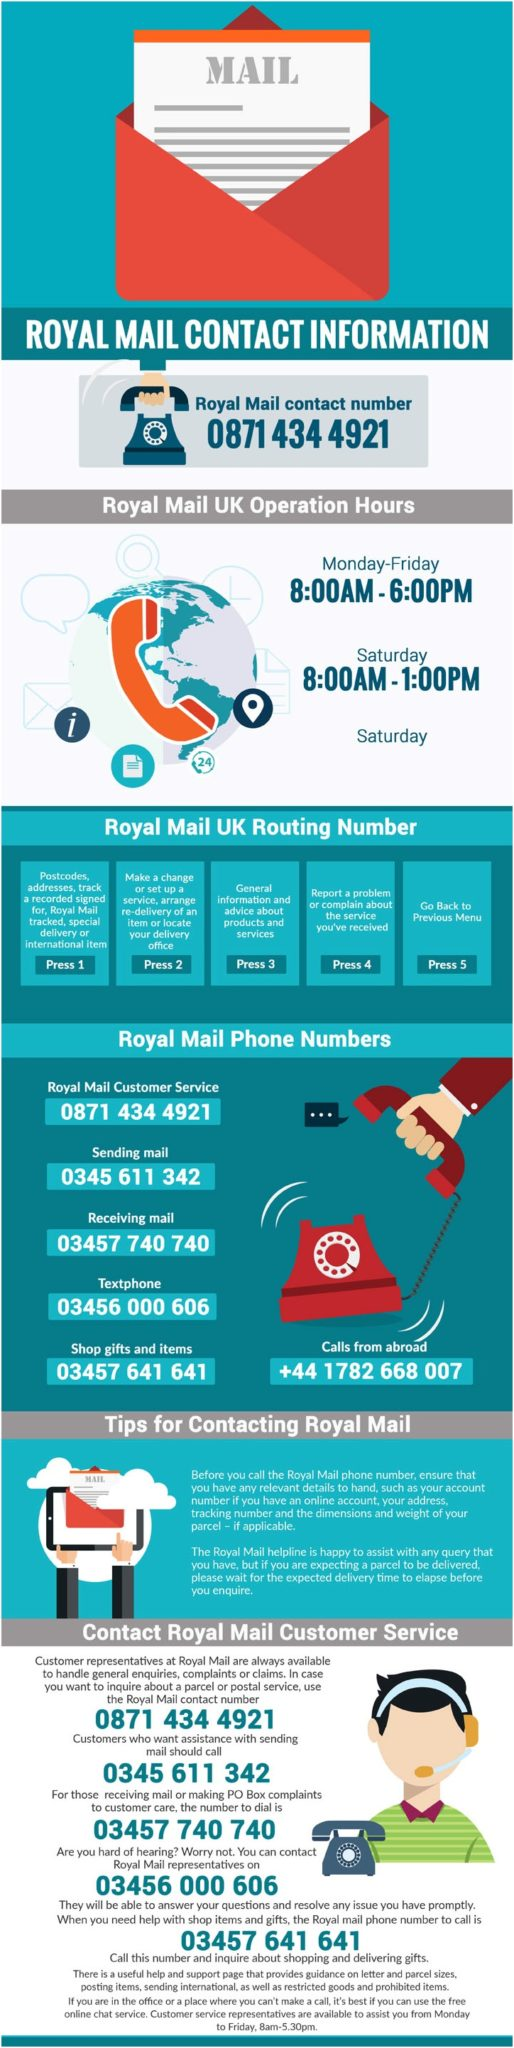 Royal Mail Helpline Contact